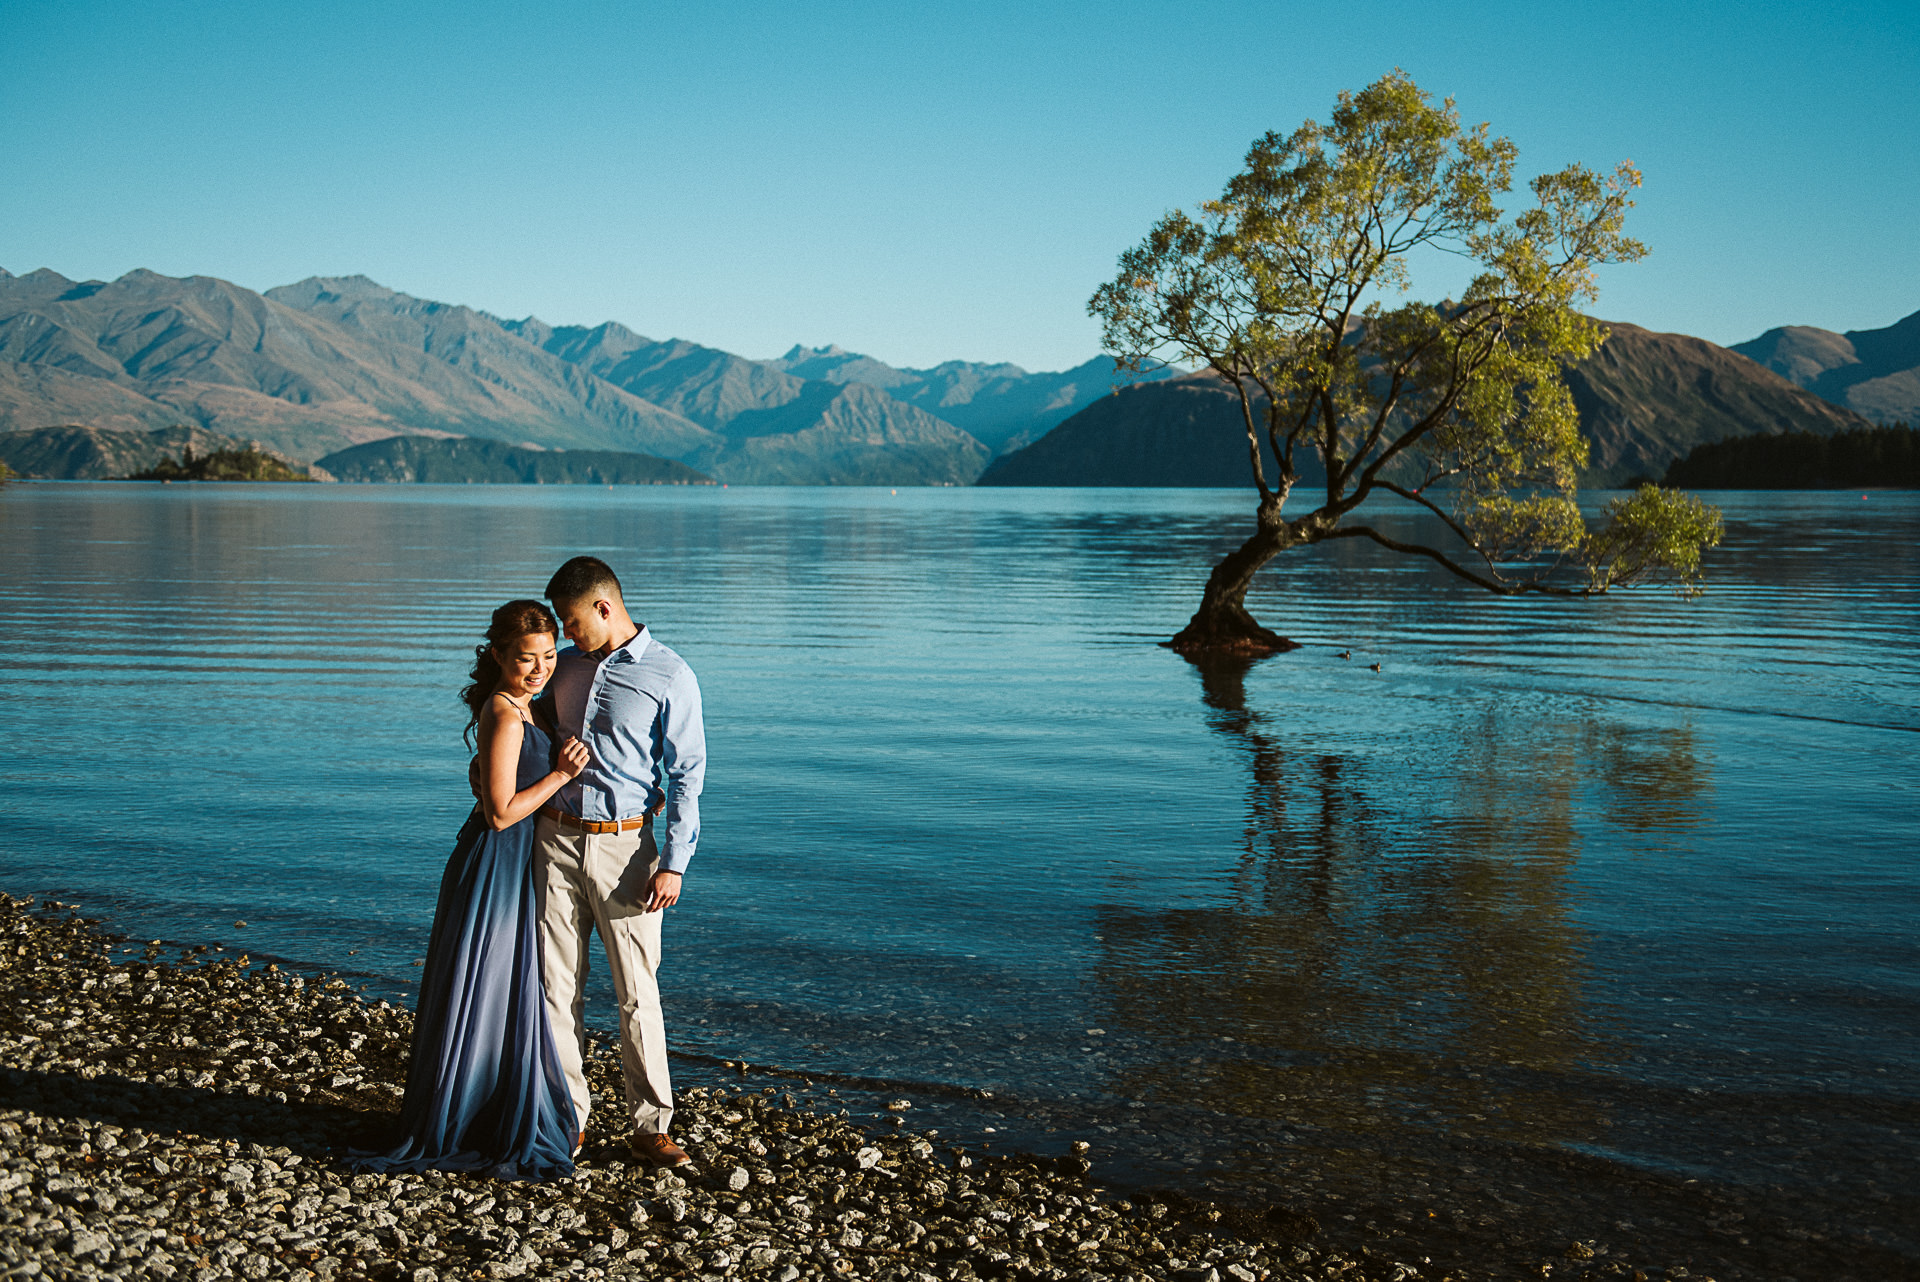 LAKE WANAKA  My hometown, Lake Wanaka. A relaxed alpine village that looks out over the lake, forests and rivers up to the mountains. We can visit the mighty Mt Aspiring National Park or head up into the breath-taking Crown Range.